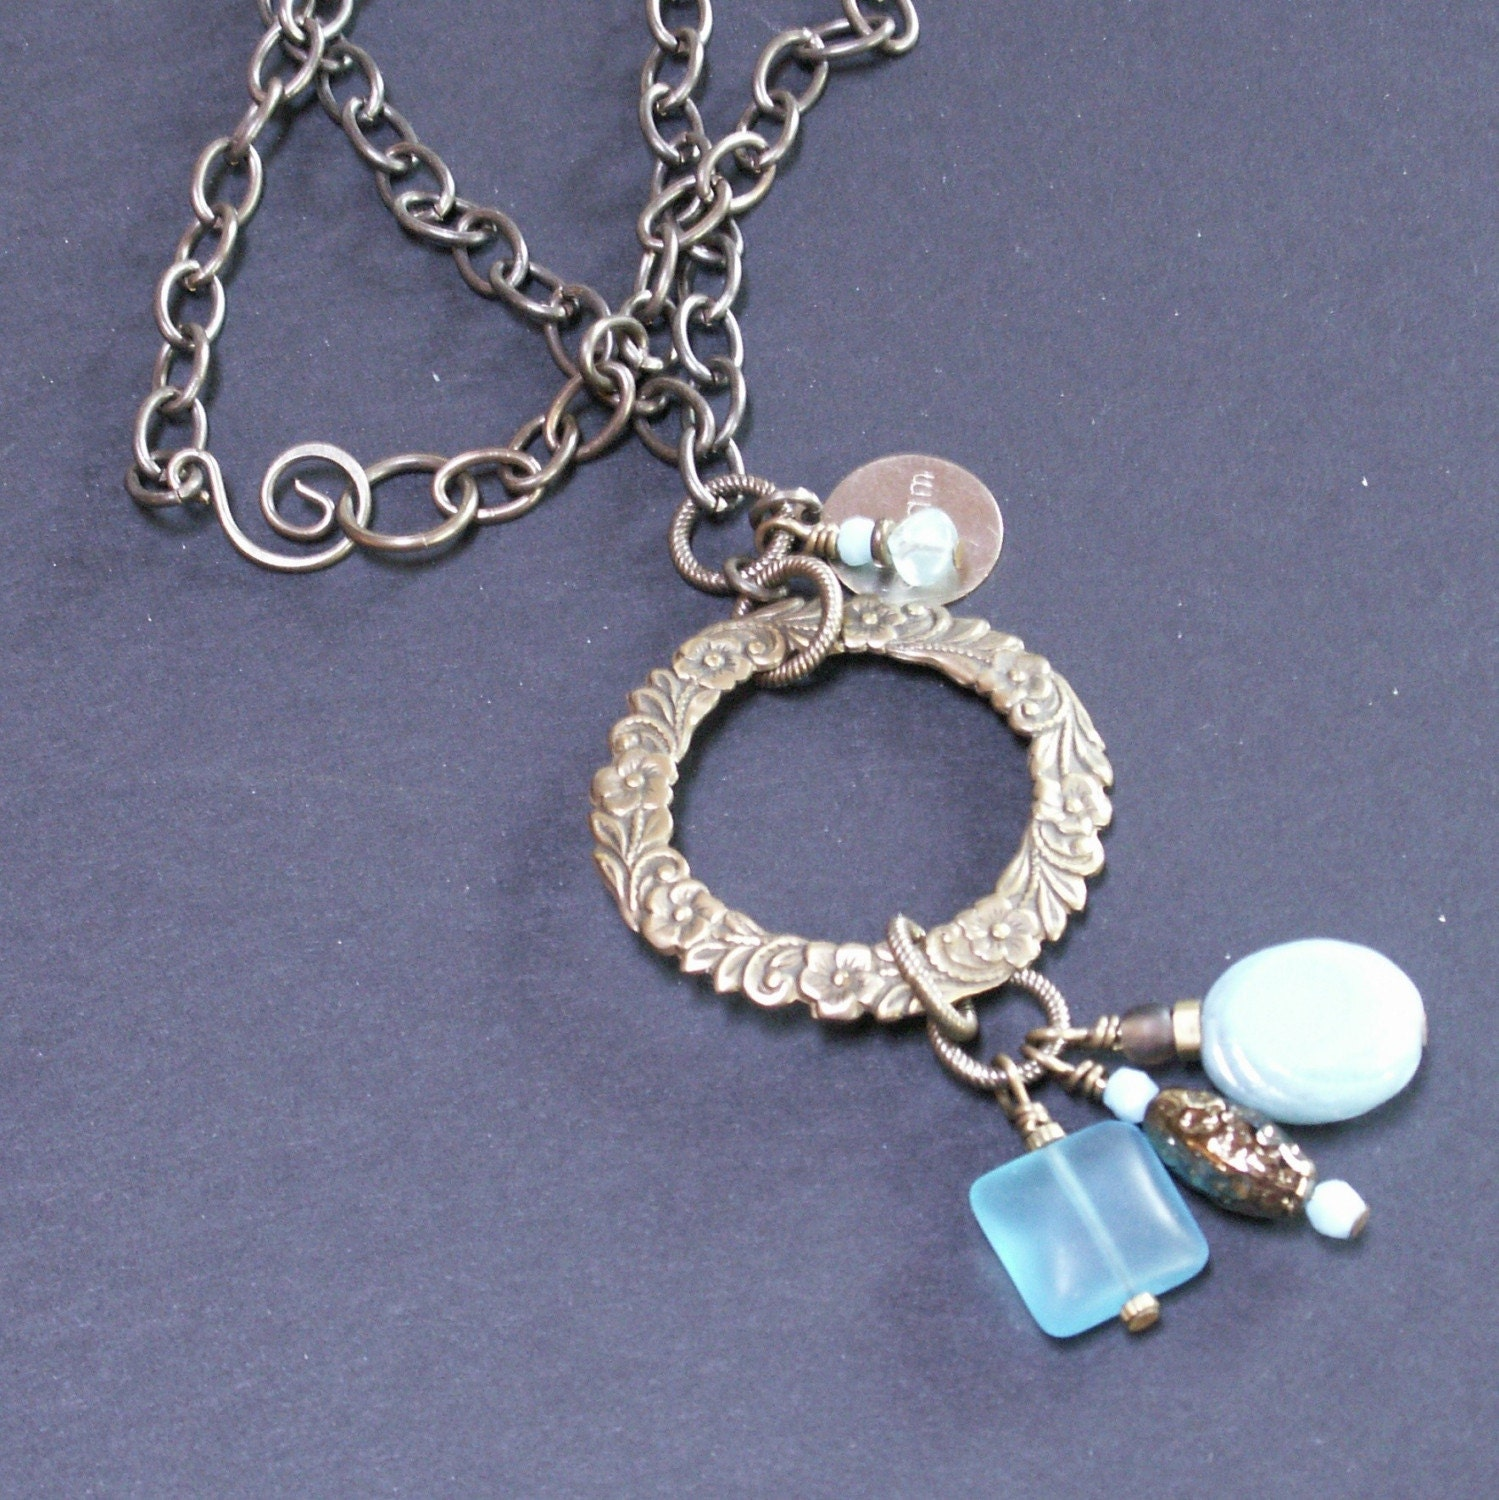 handmade jewelry necklace aqua brass chain glass beads